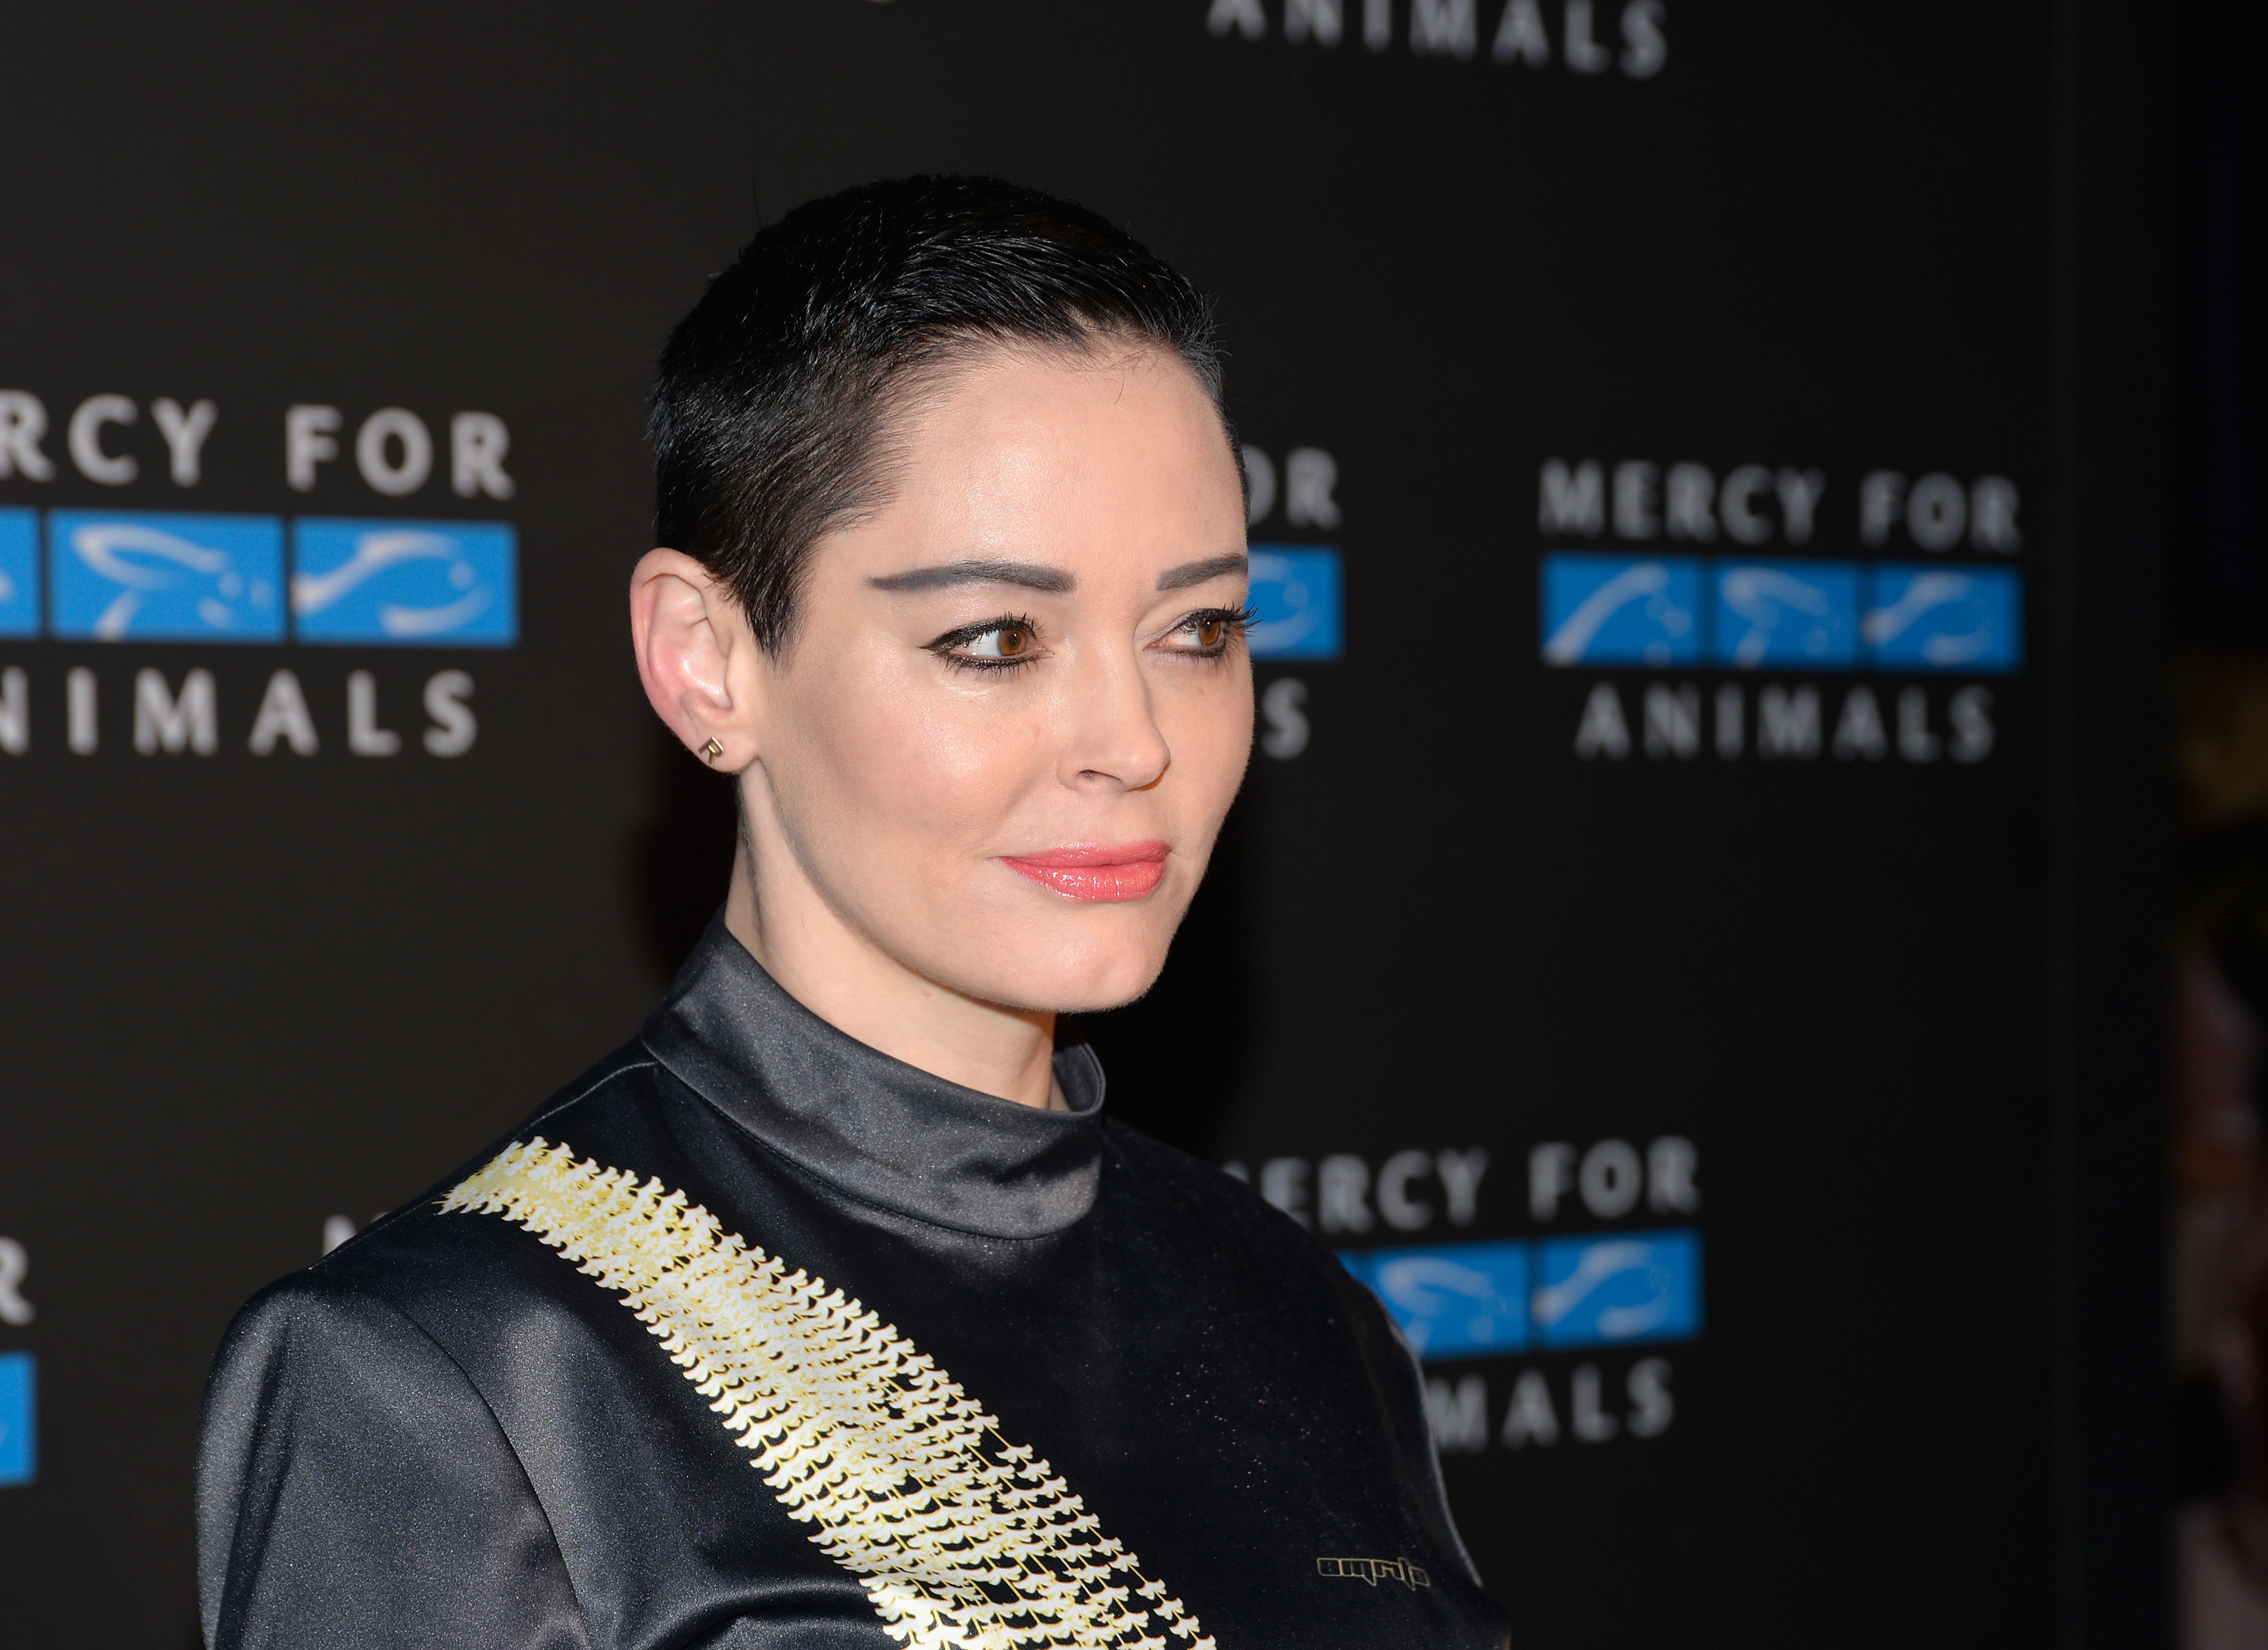 Rose McGowan attends Mercy For Animals' annual Hidden Heroes Gala at Vibiana on Sept. 23, 2017 in Los Angeles, Cali.